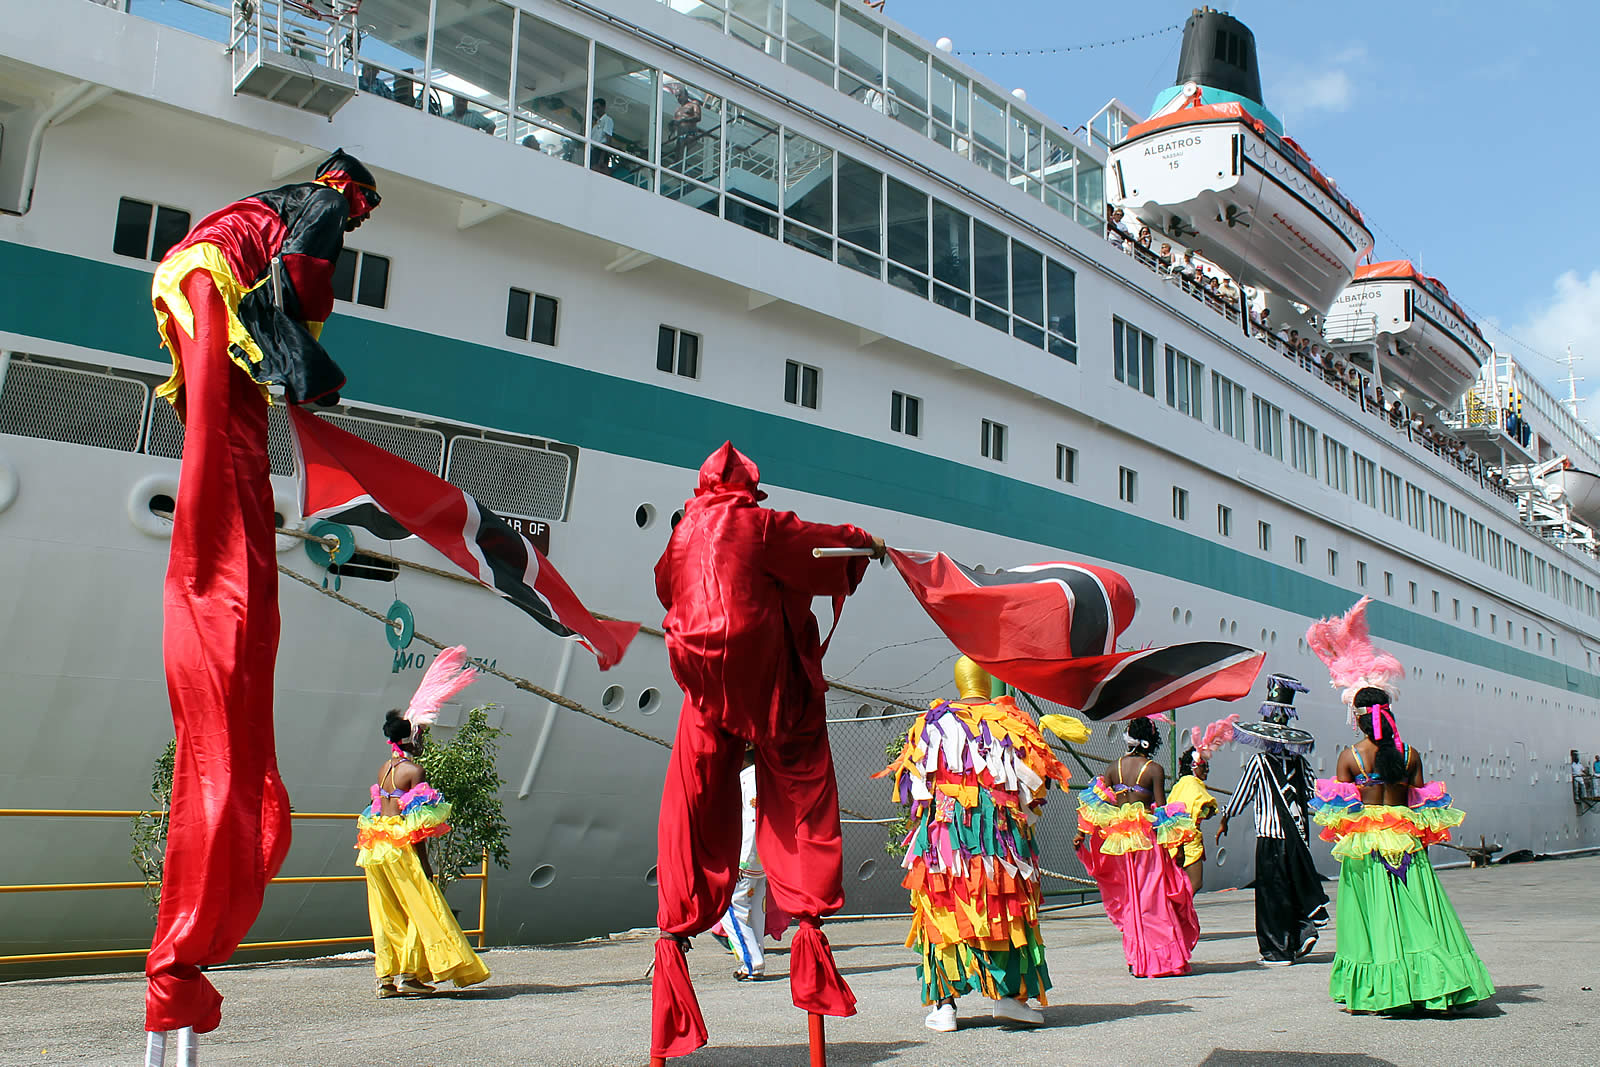 Cruising the Caribbean?  We welcome you to Port of Spain, Trinidad